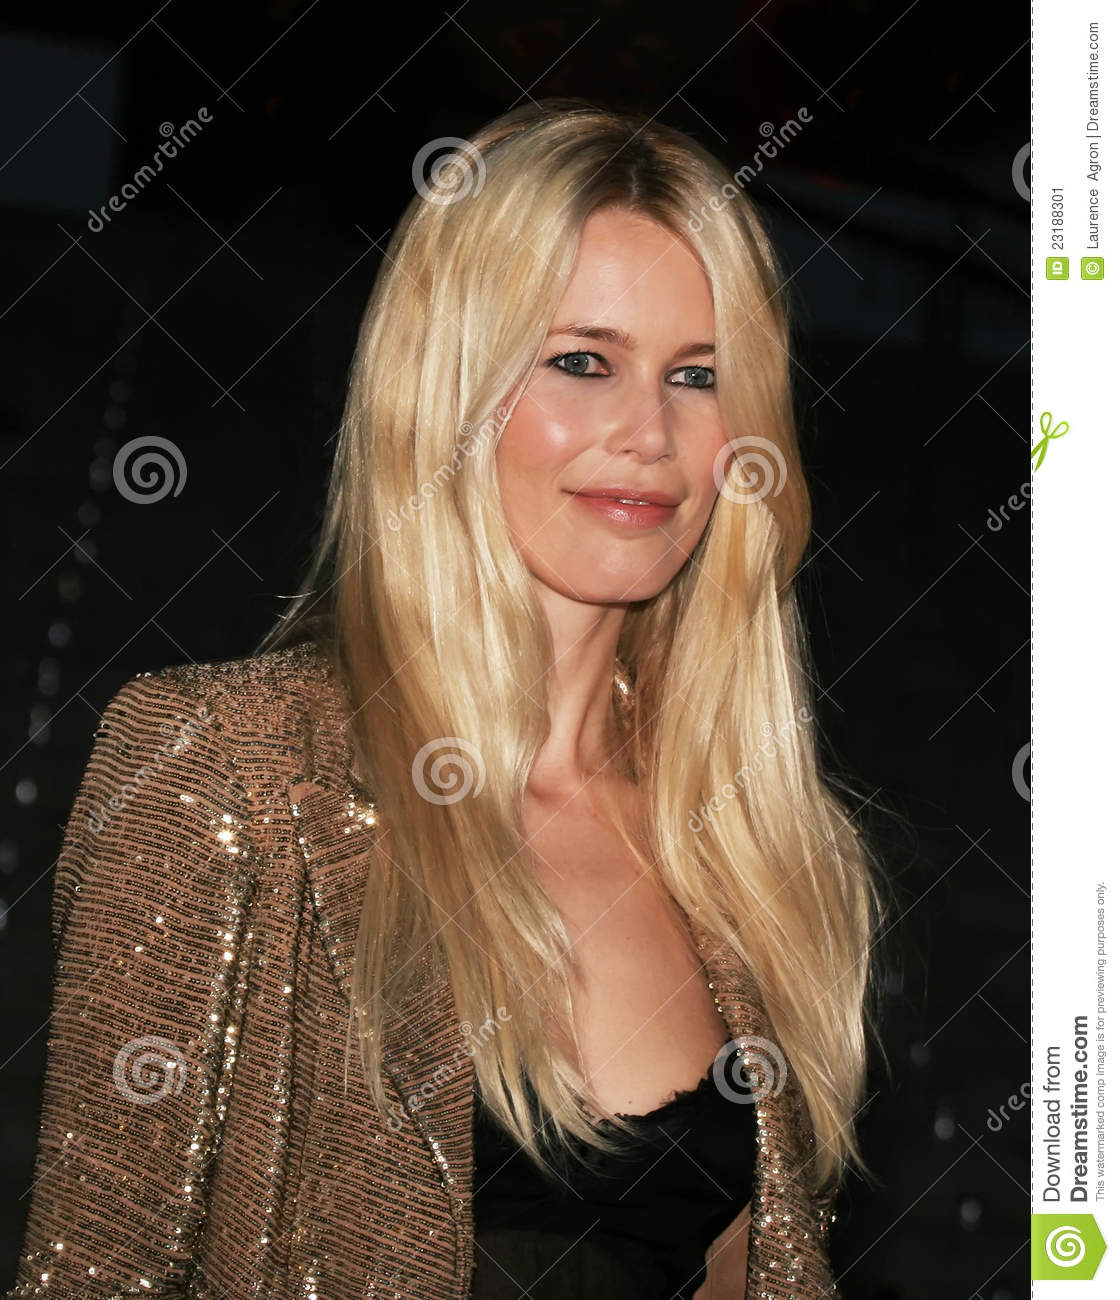 Claudia Schiffer nudes (55 fotos), images Sexy, Snapchat, butt 2016